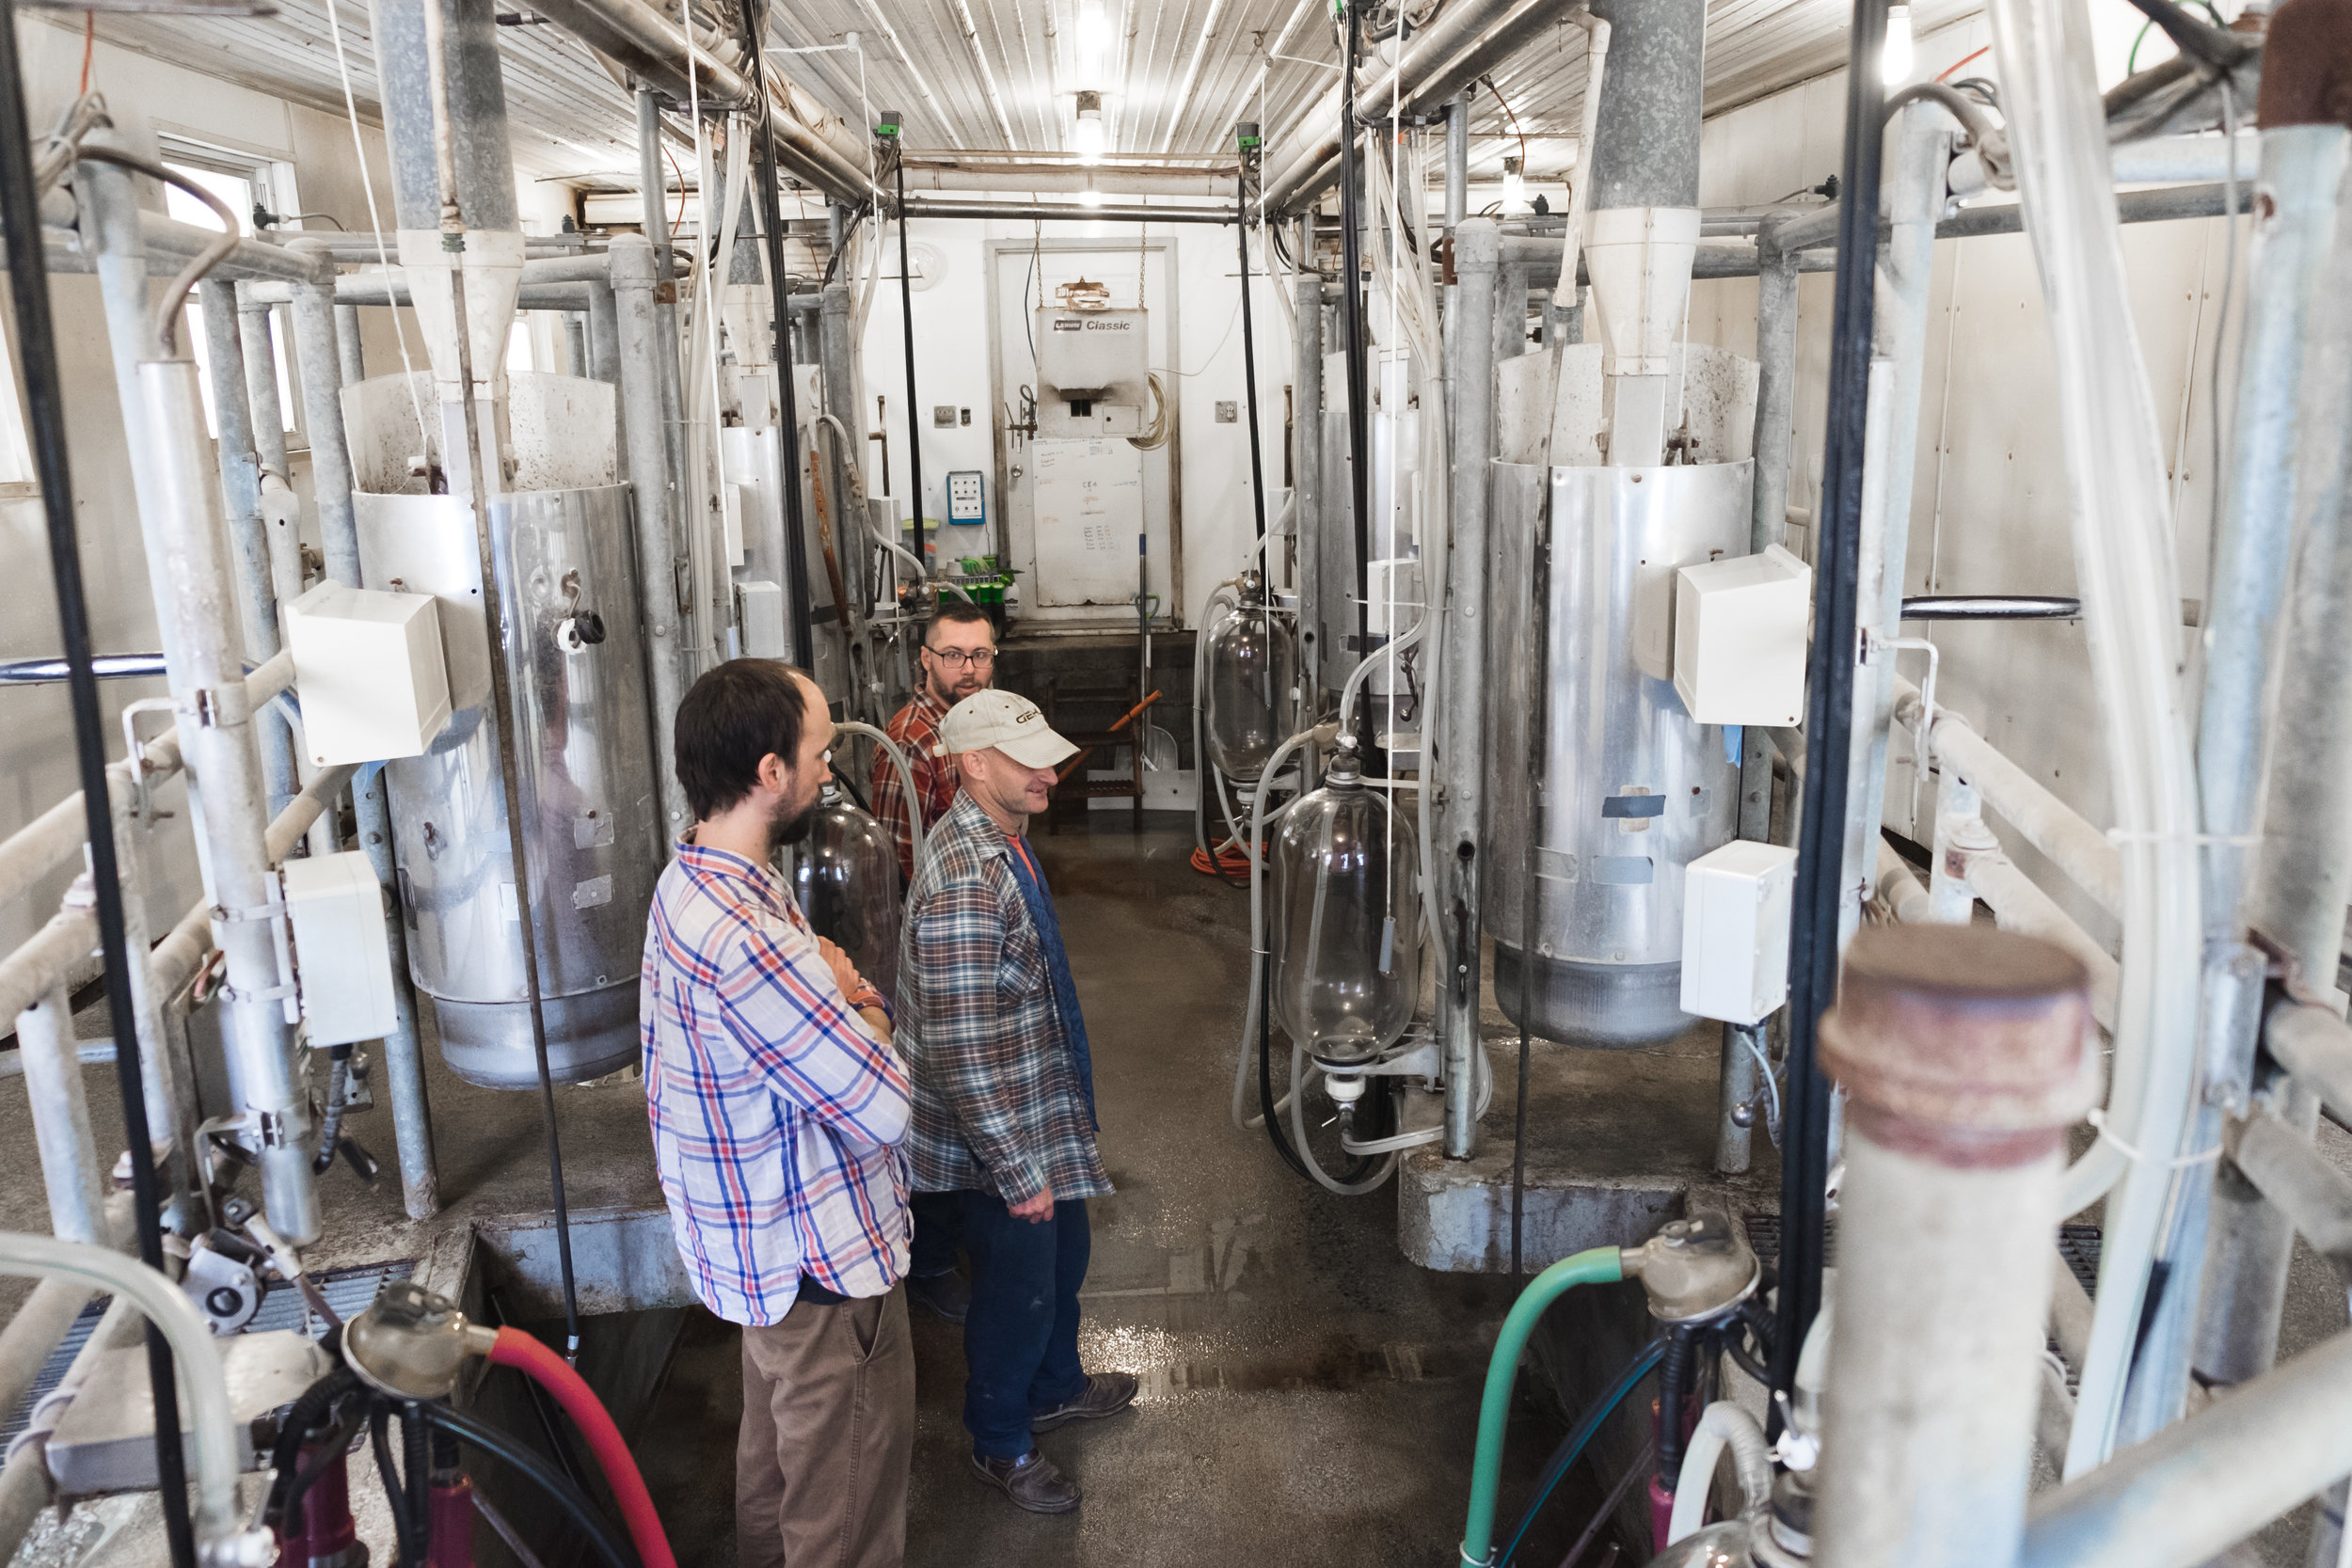 The milking room